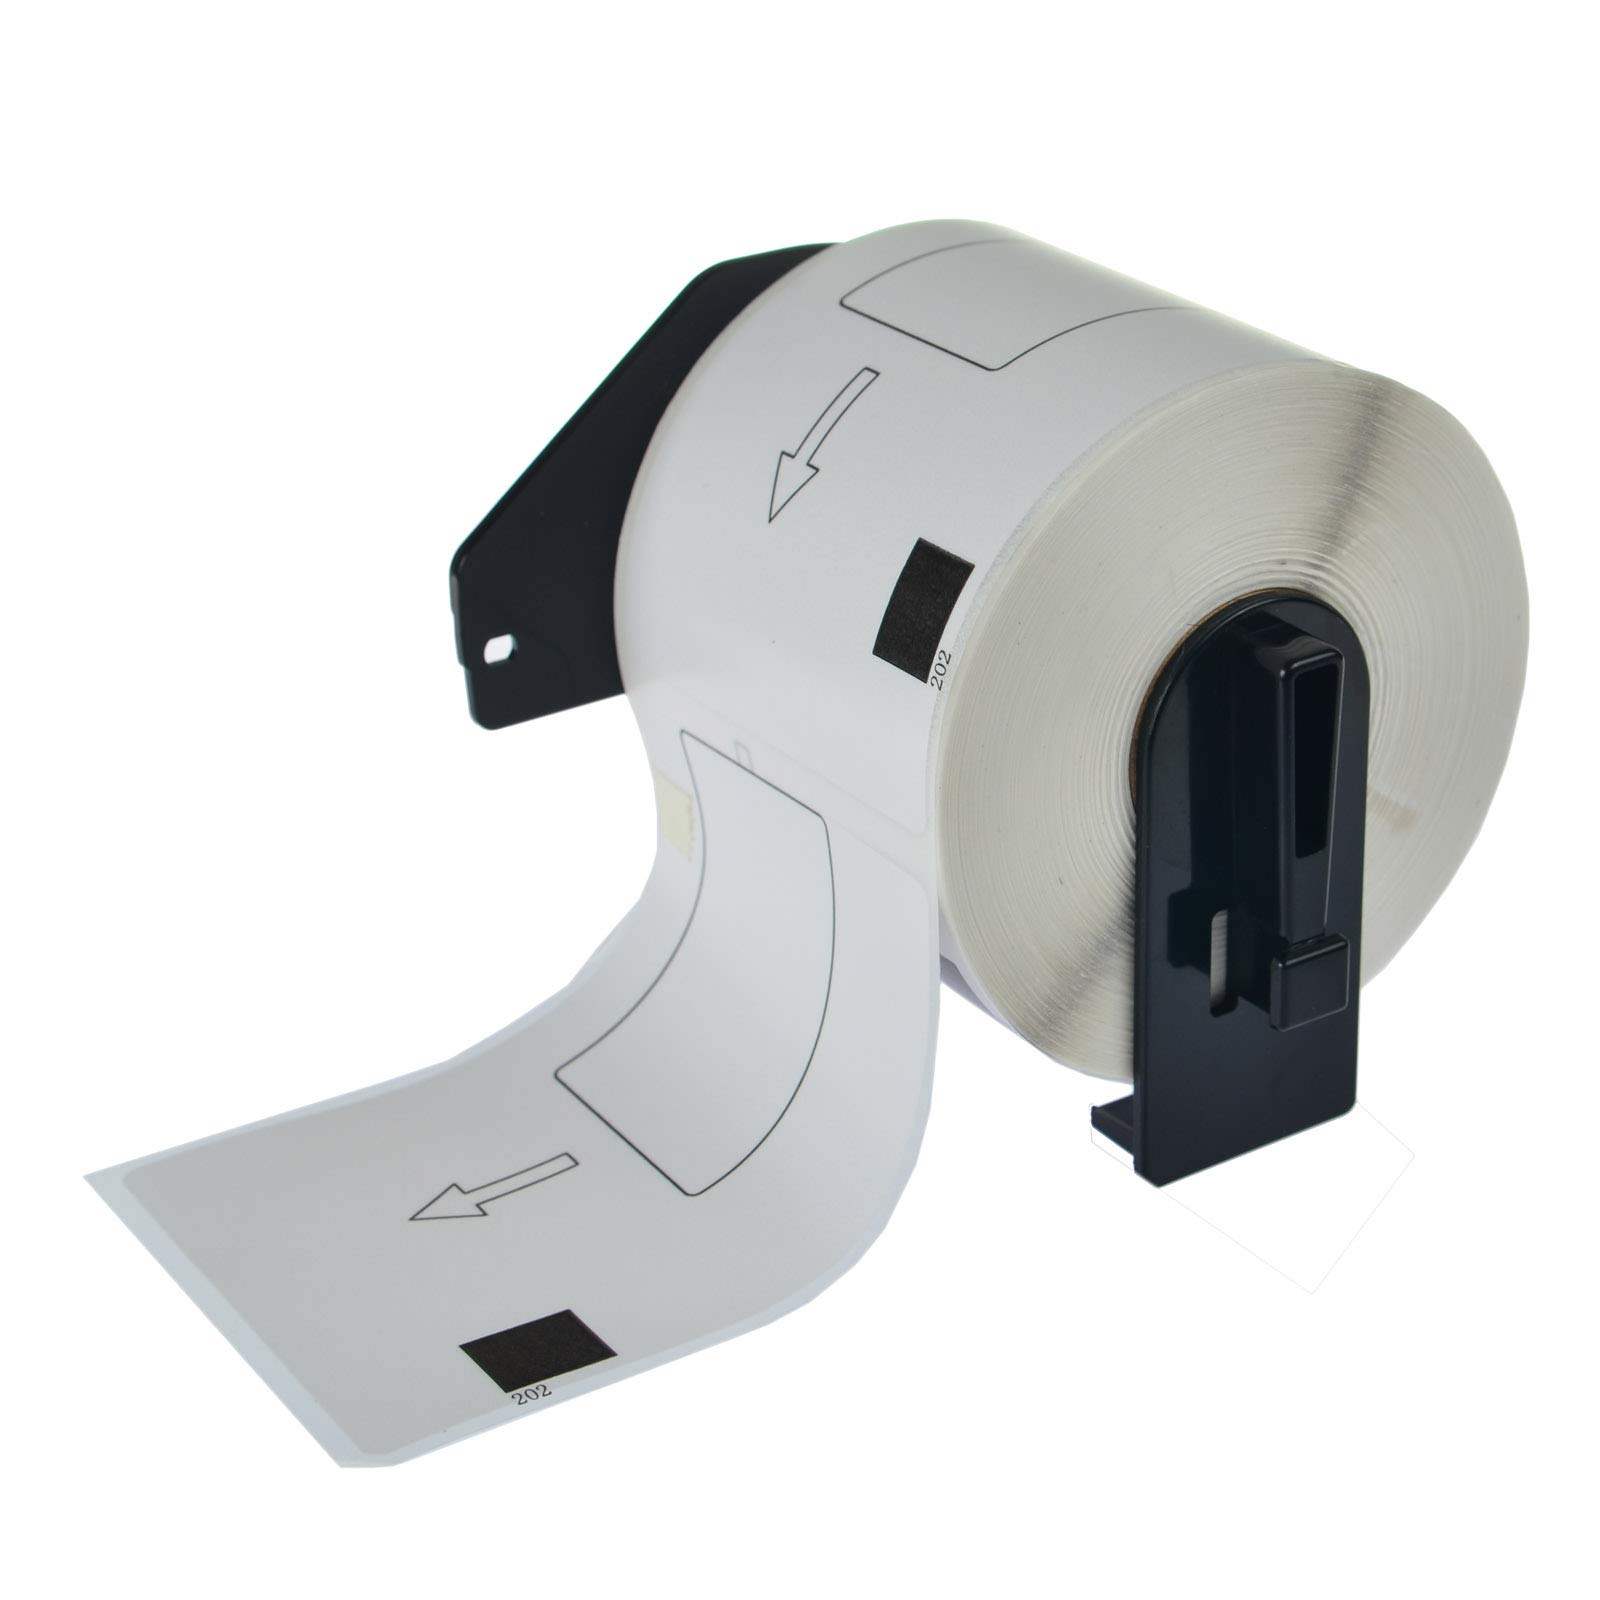 KCYMTONER 6 Rolls DK-1202 Compatible Continuous Paper Labels 2-3/7 Inches (62mm) by 100mm (4''), BPA Free, Strong Adhesive, Use in Brother P-Touch QL-500 QL-710W QL-1050 QL-1050N QL-1060N and More by KCYMTONER (Image #2)